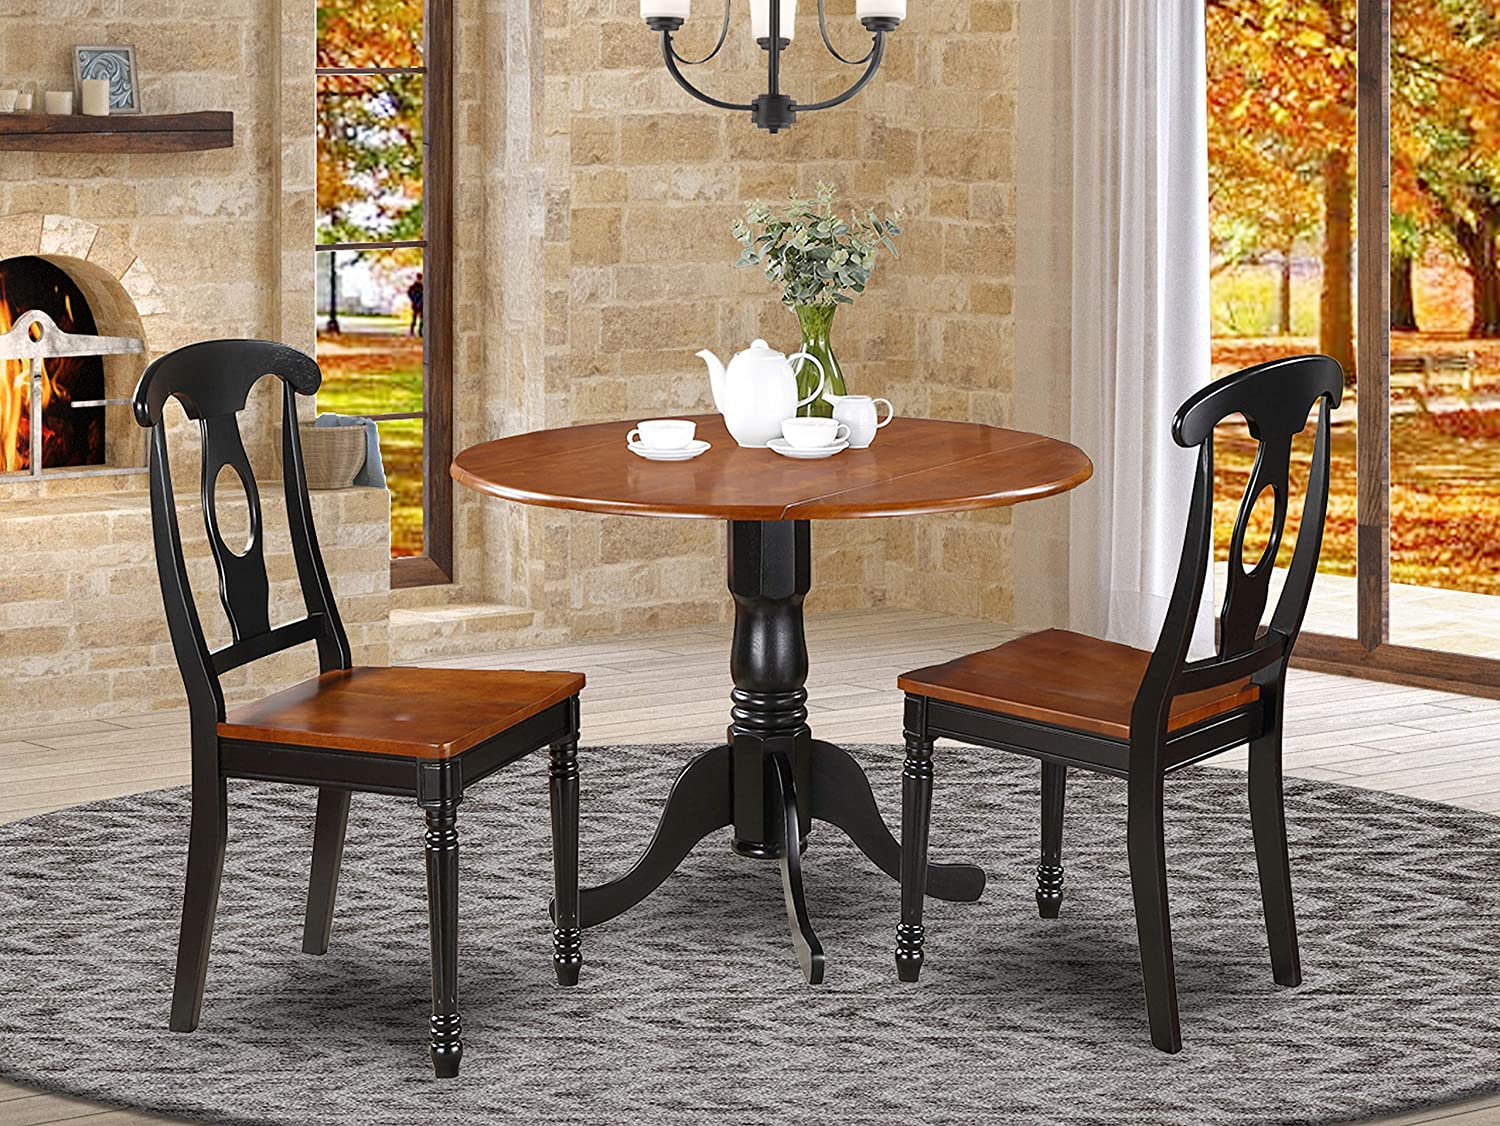 Amazon Com 3 Pc Small Kitchen Table Set Small Table And 2 Dining Chairs Furniture Decor